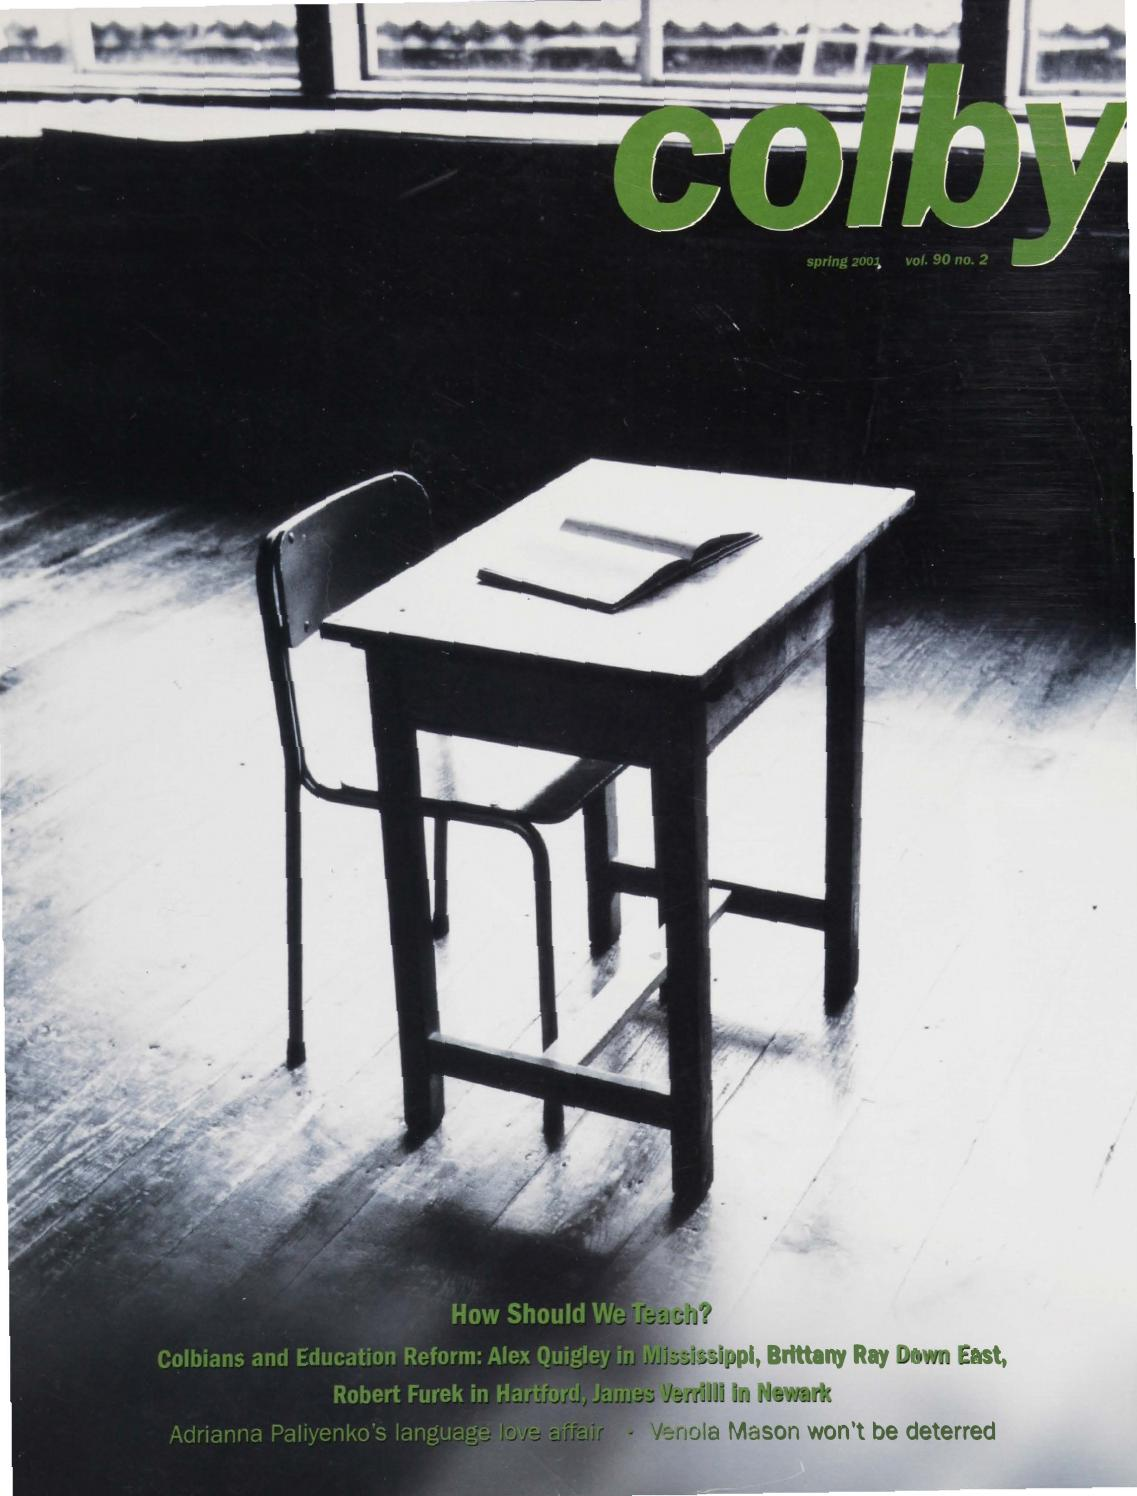 Colby Magazine Vol 90 No 2 By College Libraries Issuu Voucher Belanja Di Sarah Nursery Rp 100000